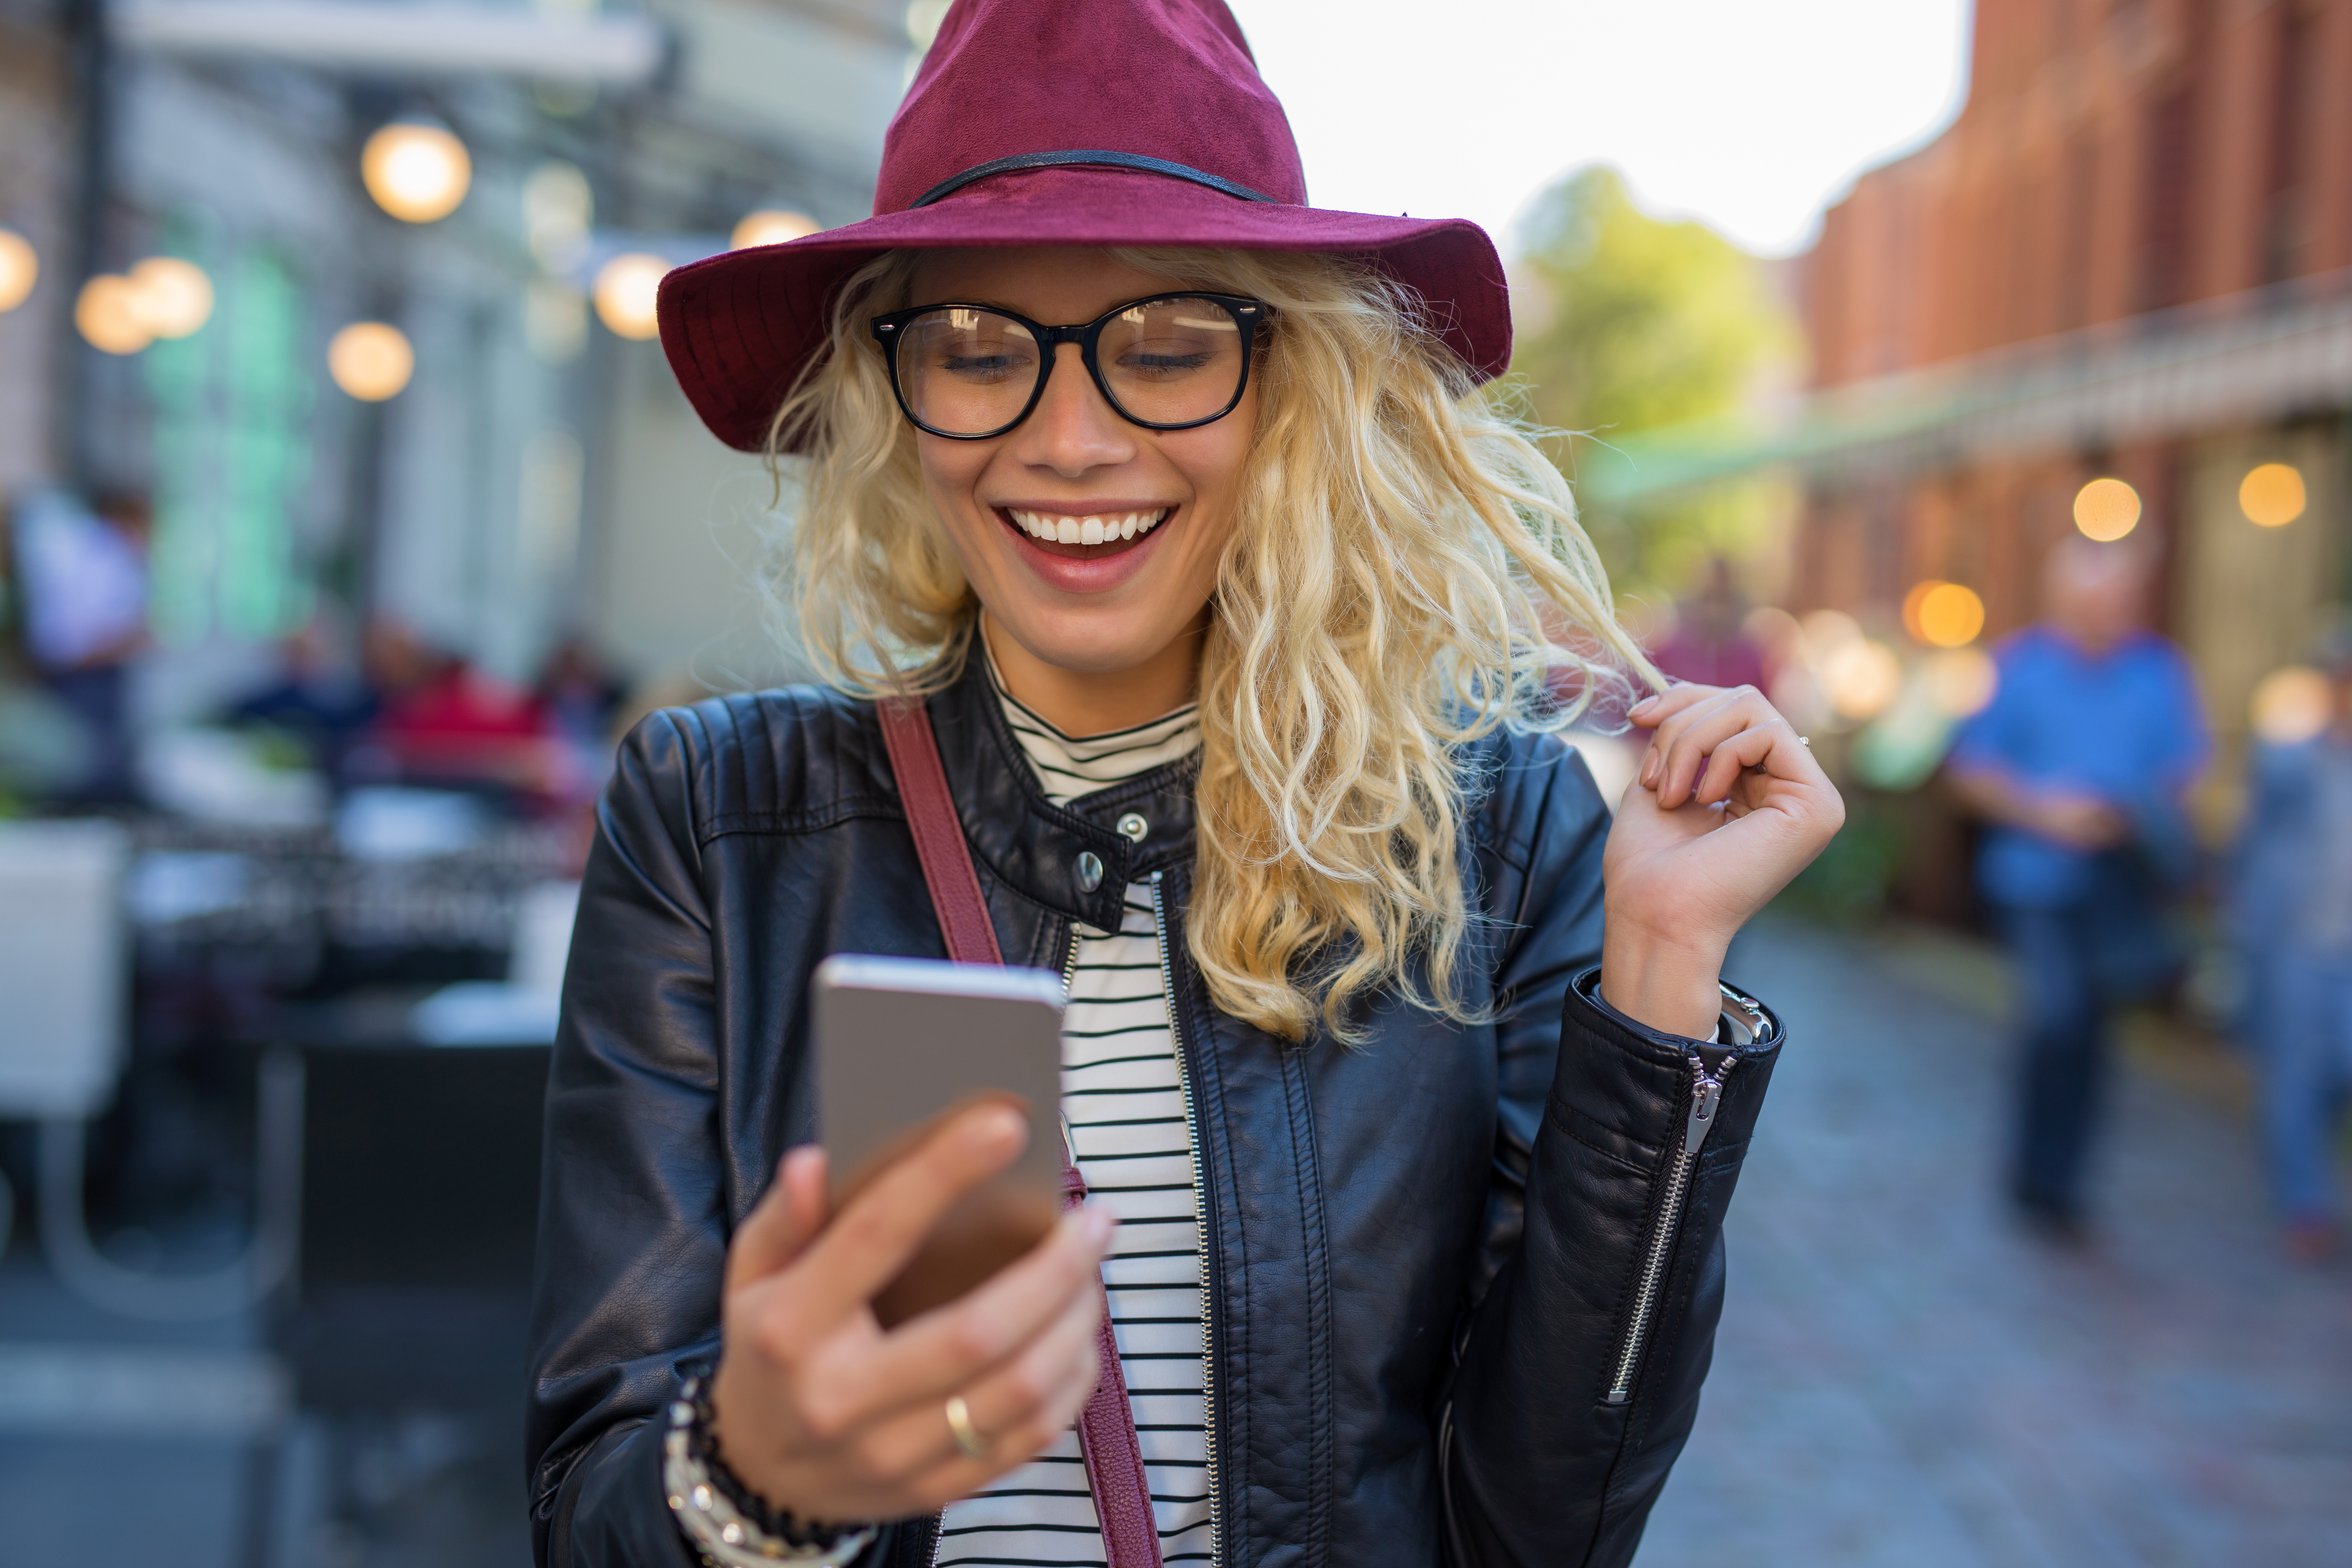 woman smiling at phone against city background